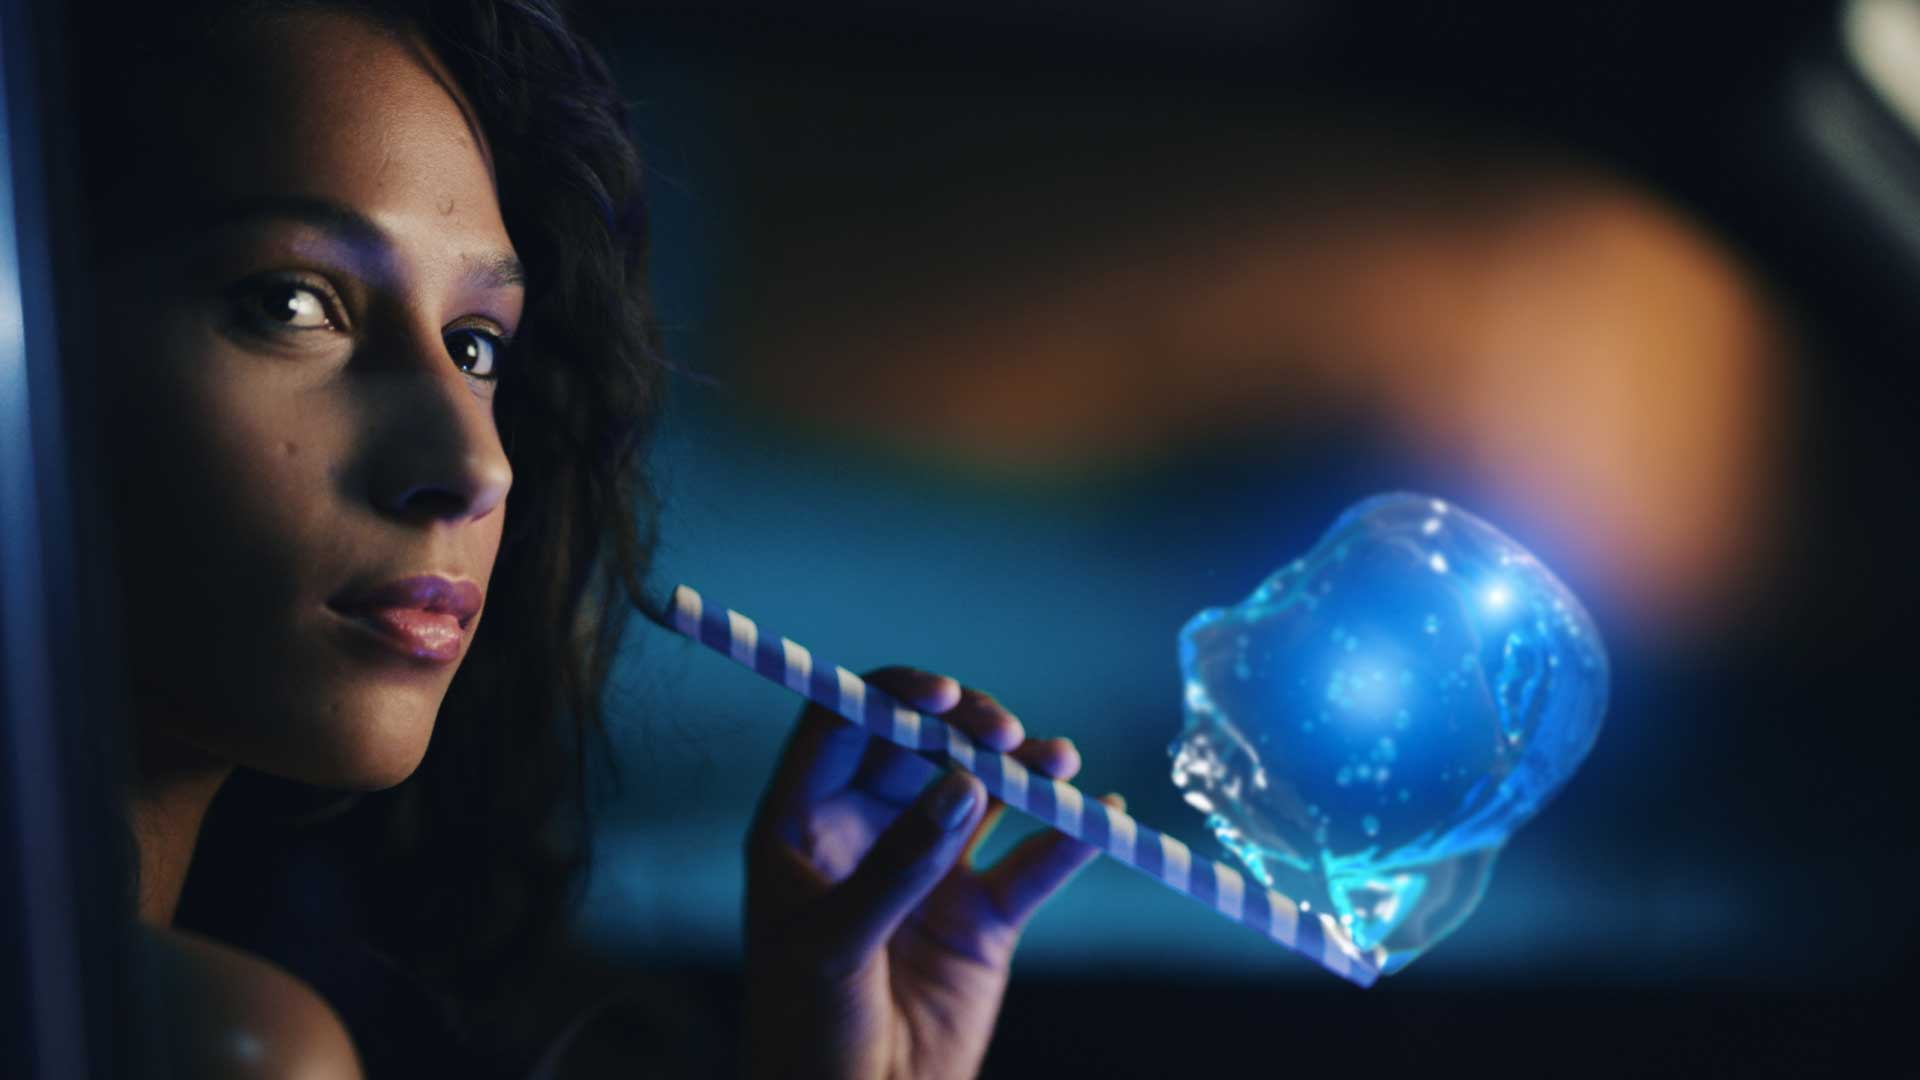 Woman with straw and bubble. Still from Toyota Yaris commercial.